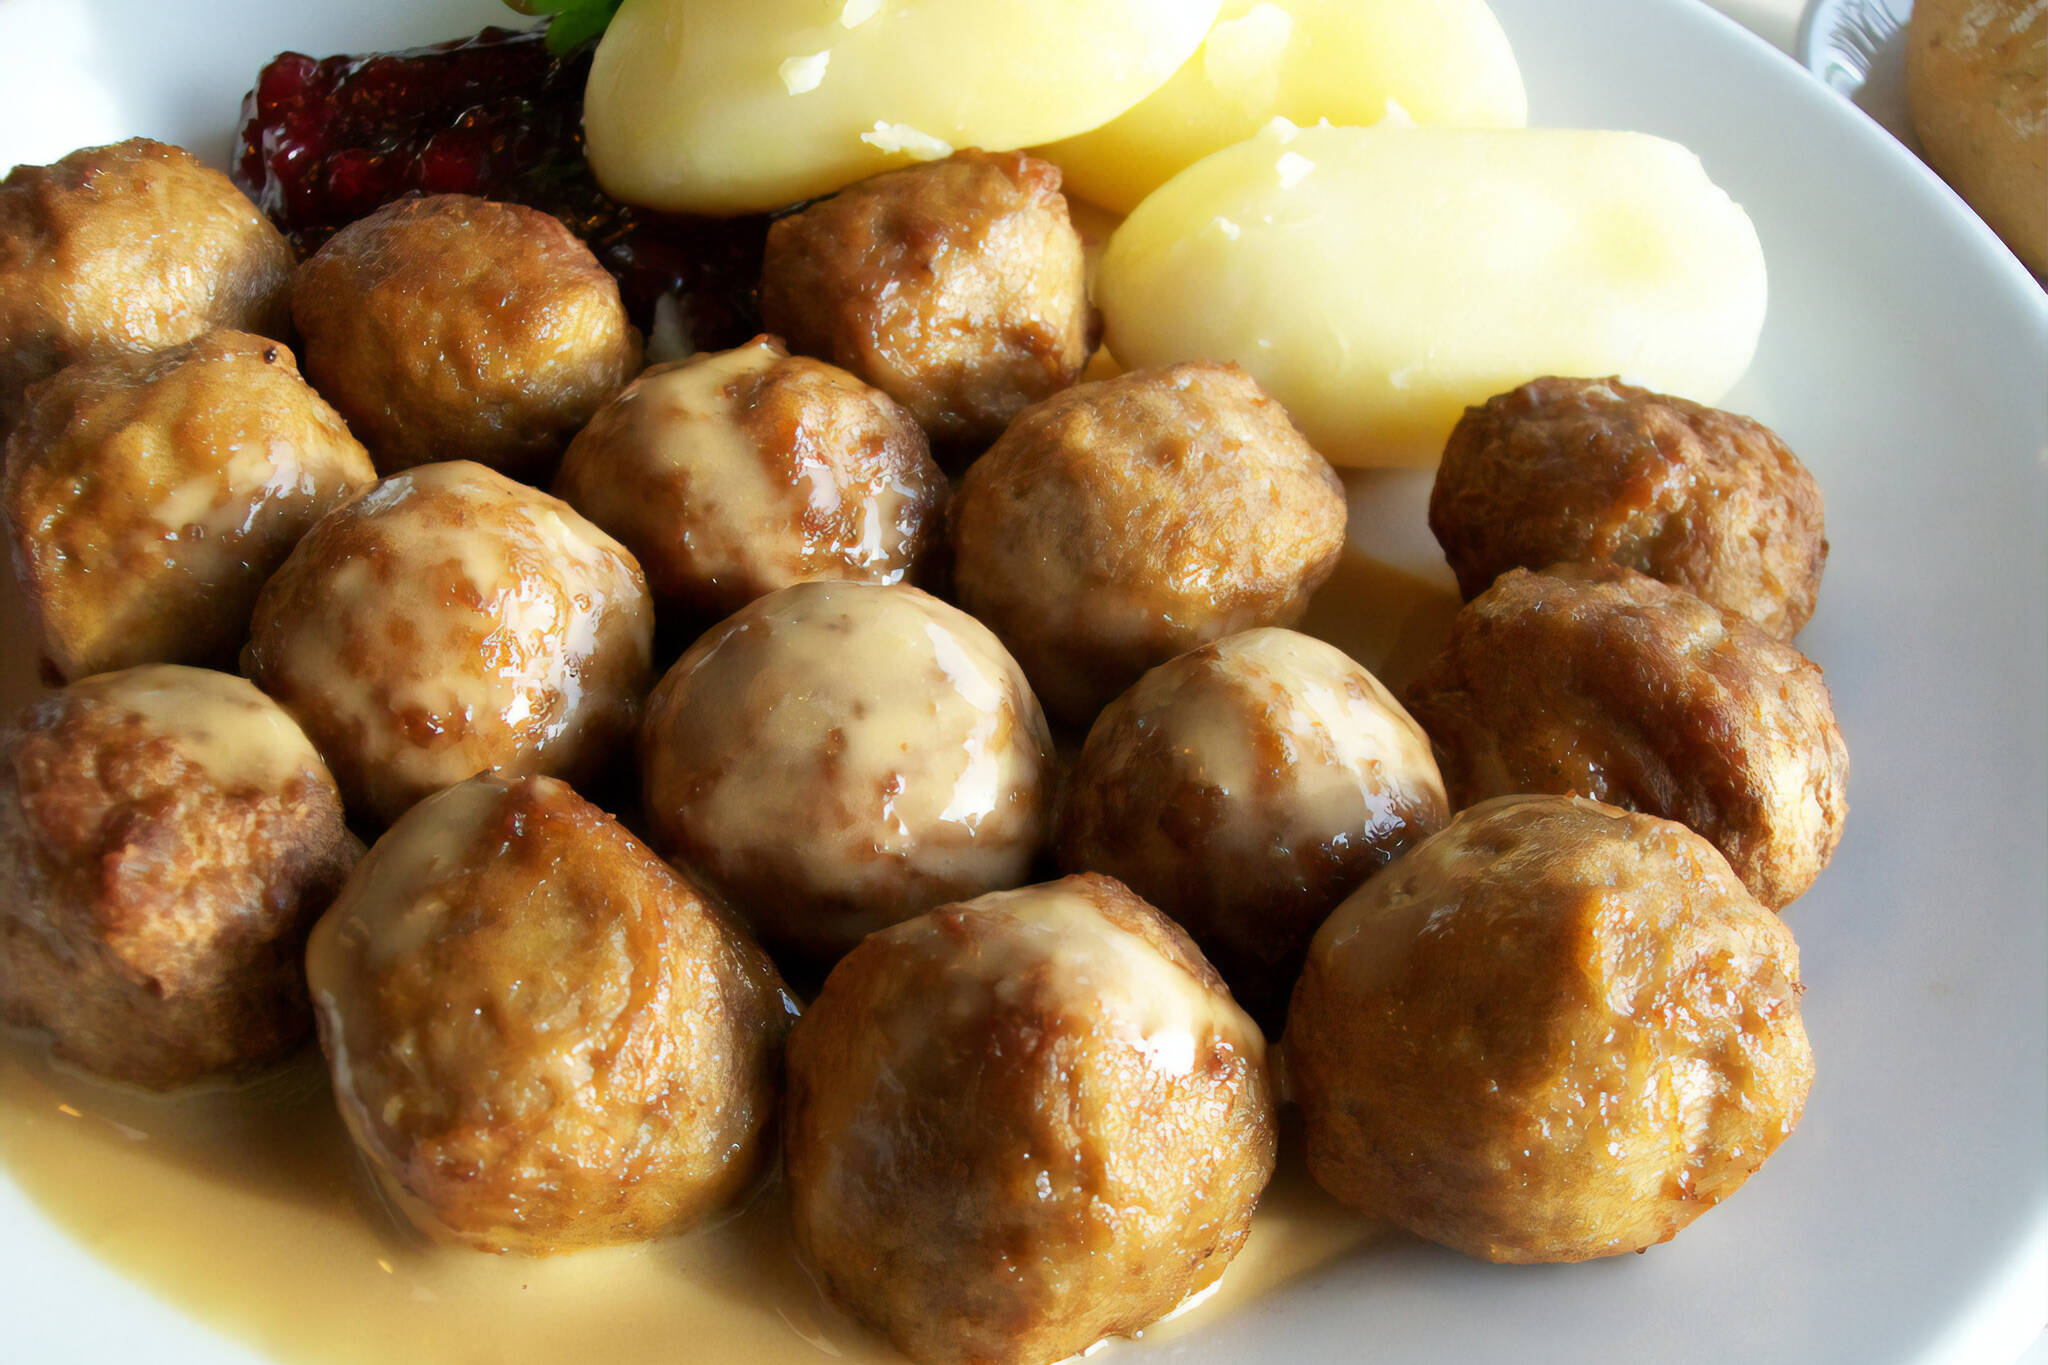 Ikea Just Shared The Recipe For Its Famous Swedish Meatballs